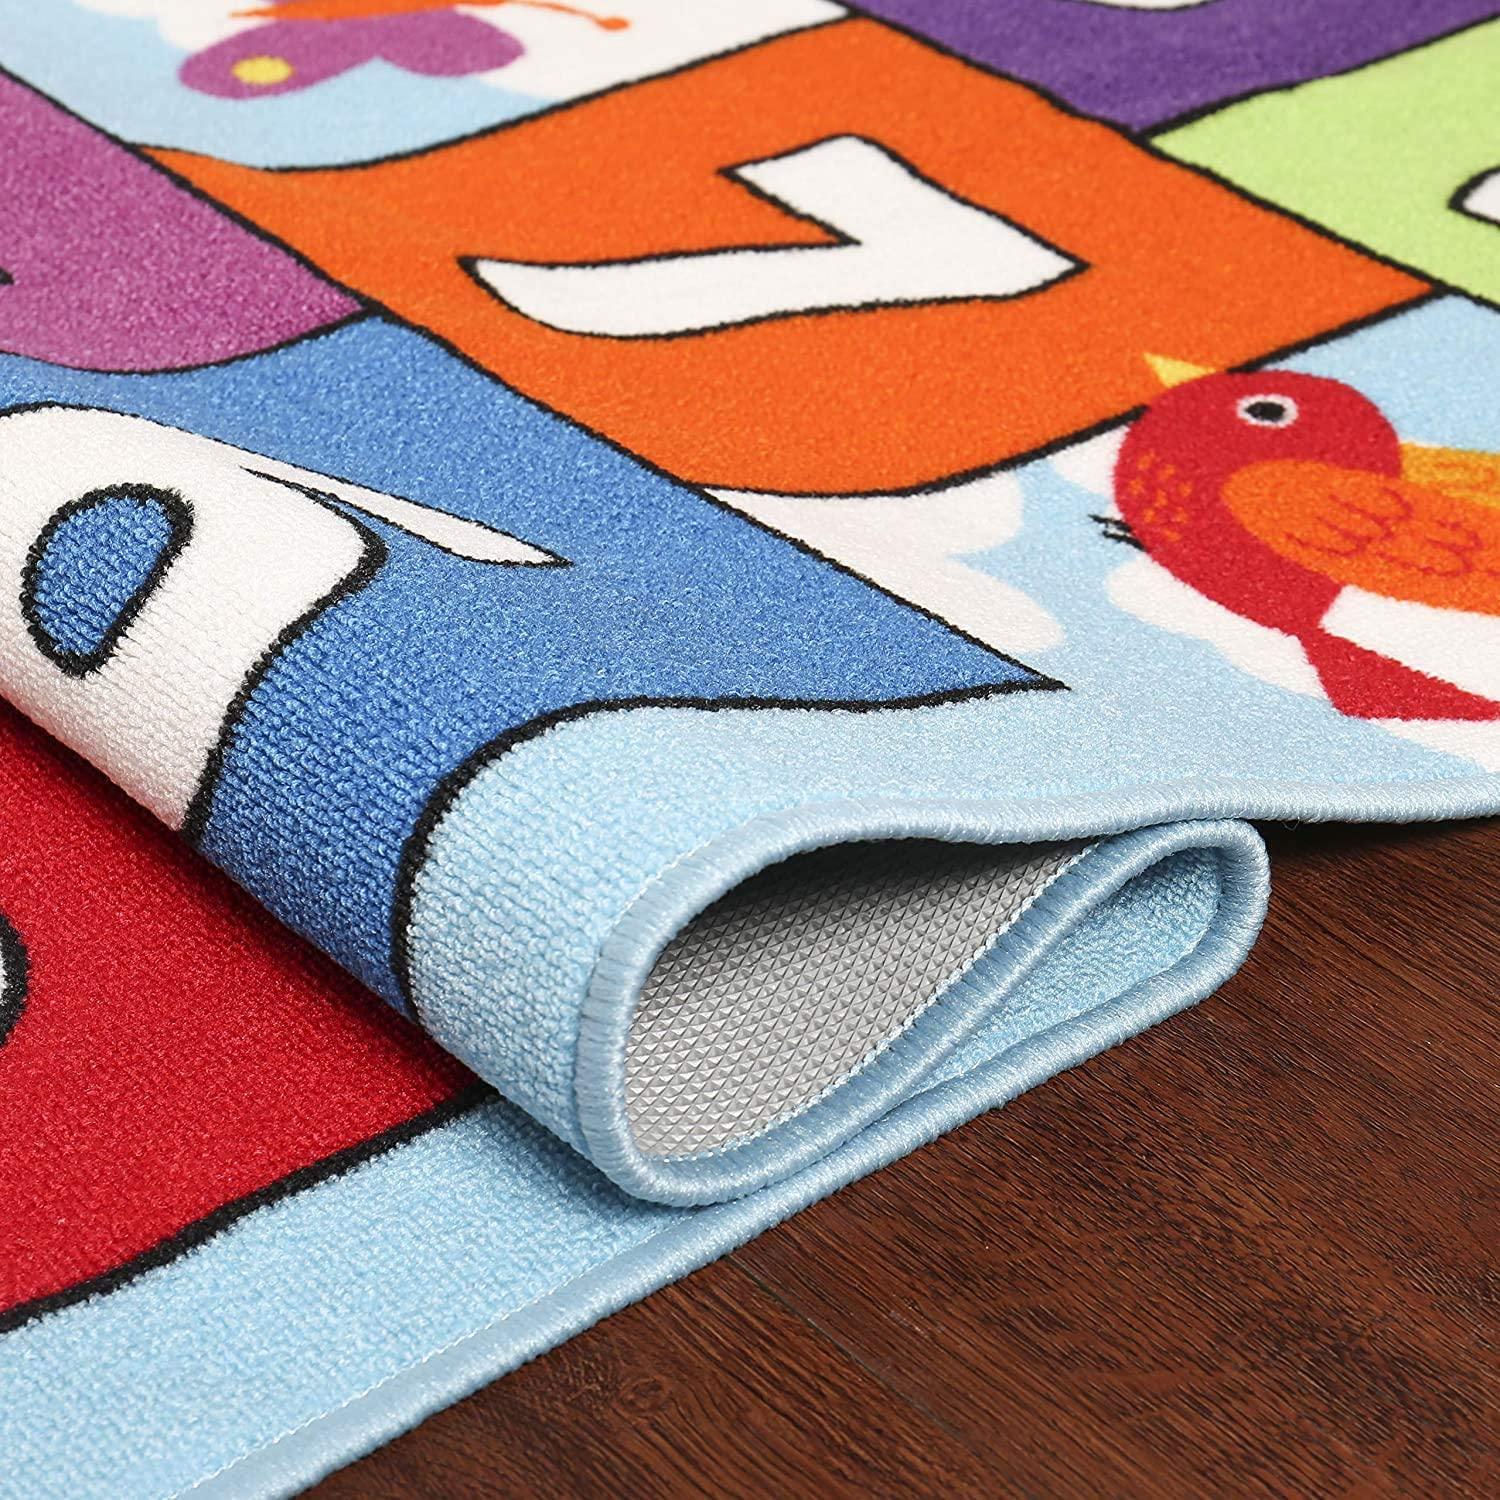 HIGHTAO Hop /& Count Hopscotch Rug Soft Carpet Children Floor Playing Crawling Game Rectangle Mat Home Decortion Floor Rug Great for 3 5 26 x 78 6 and 7 Year Olds 4